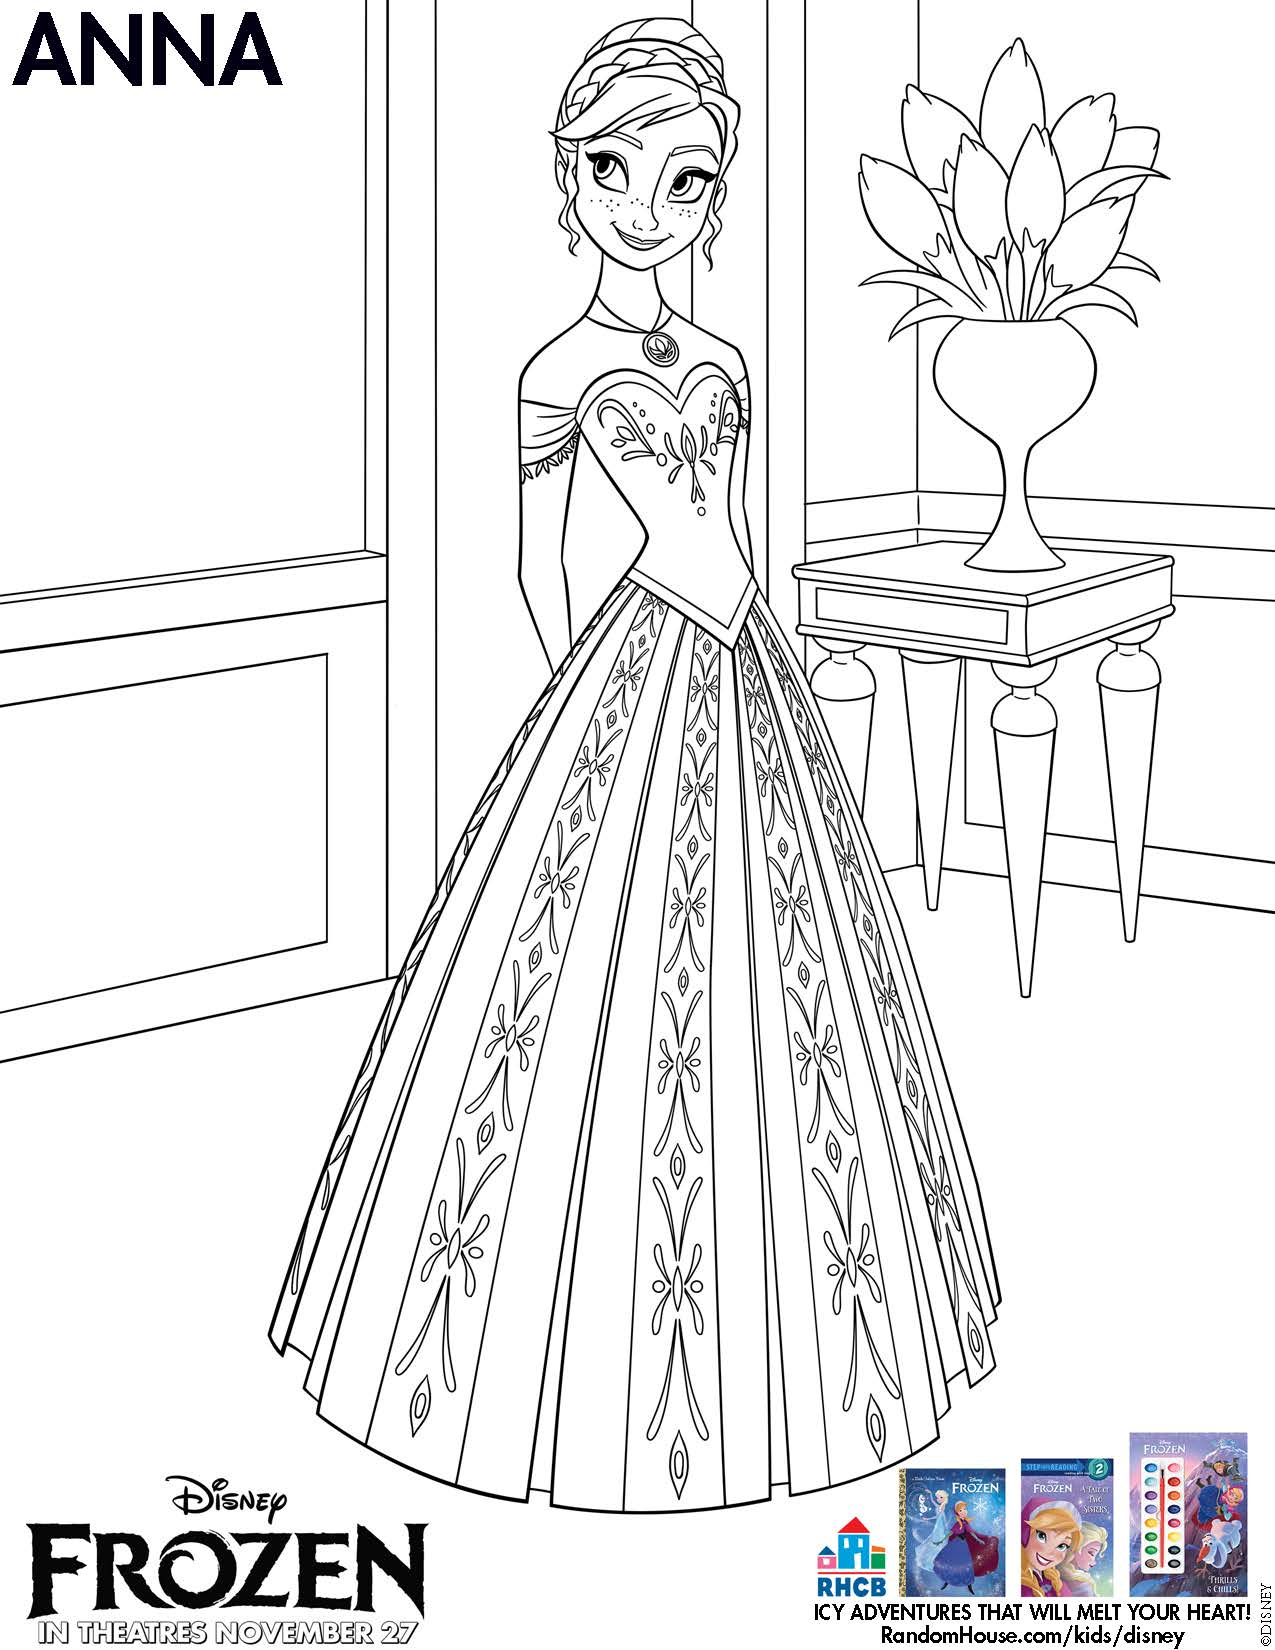 Disneys FROZEN Movie Printable Coloring Pages And Activity Sheets